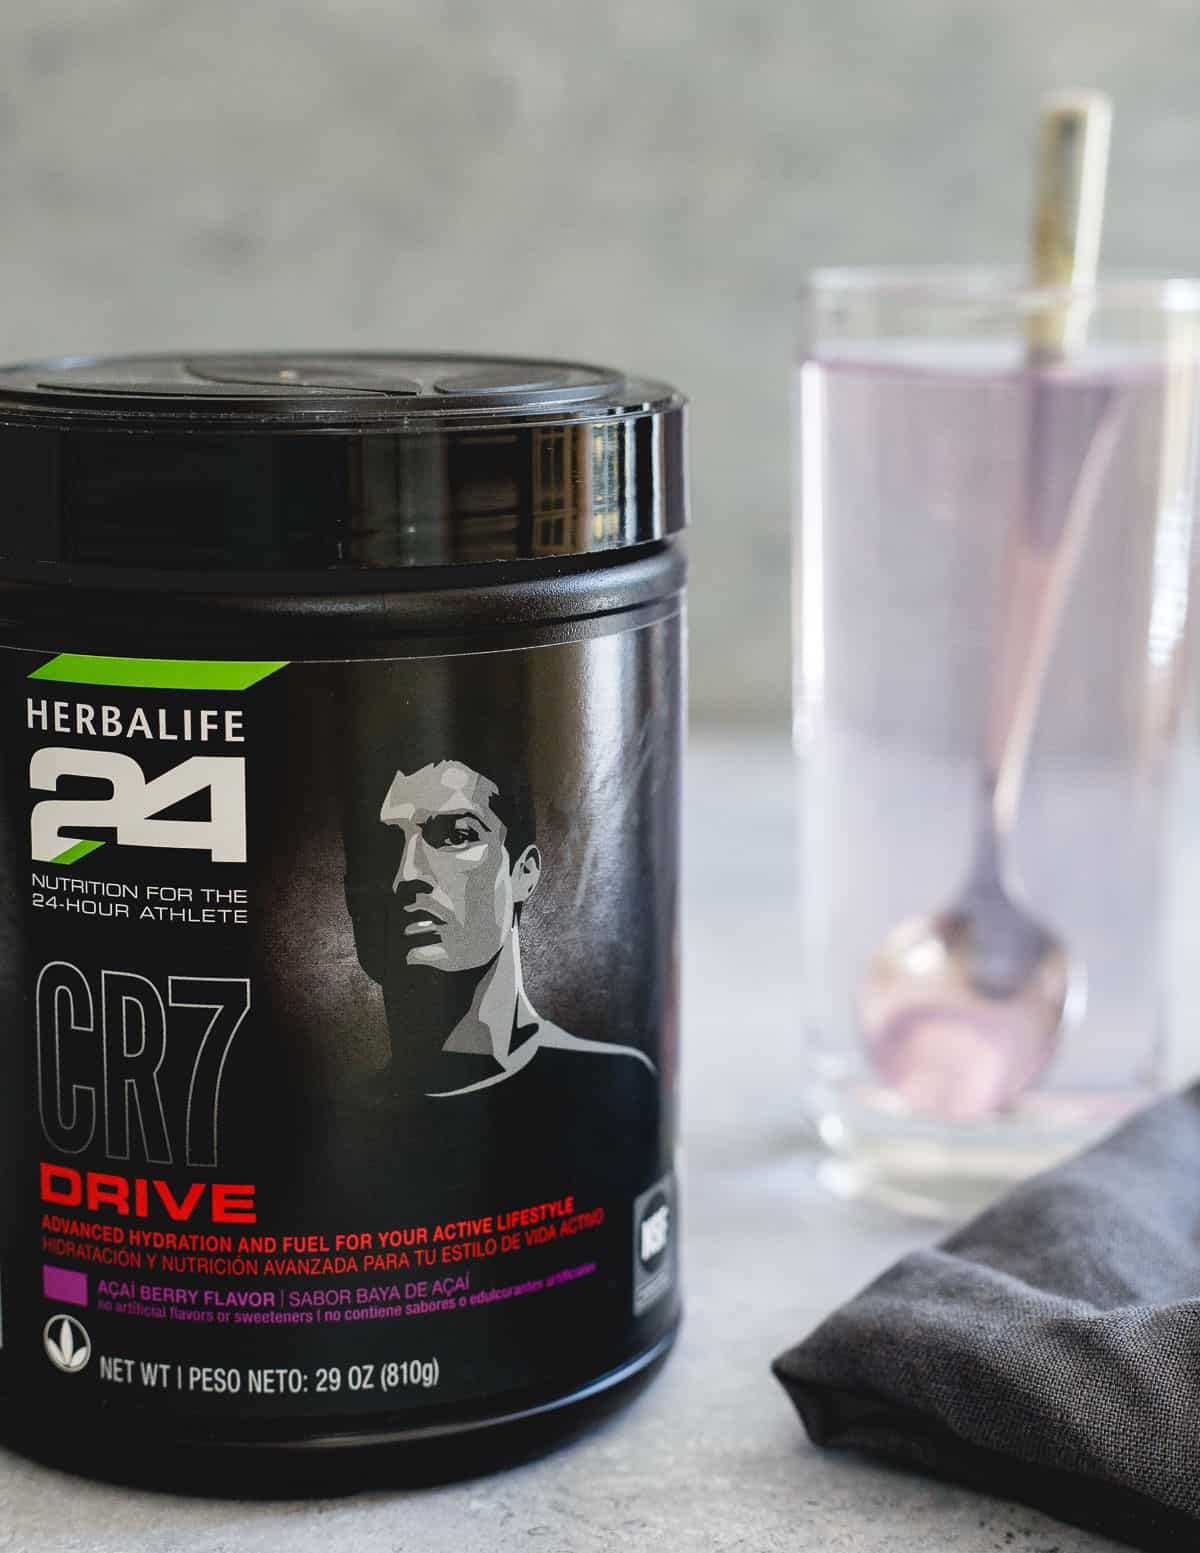 Herbalife's CR7 Drive is a great hydration option for athletes with a blend of electrolytes, carbohydrates and vitamins.